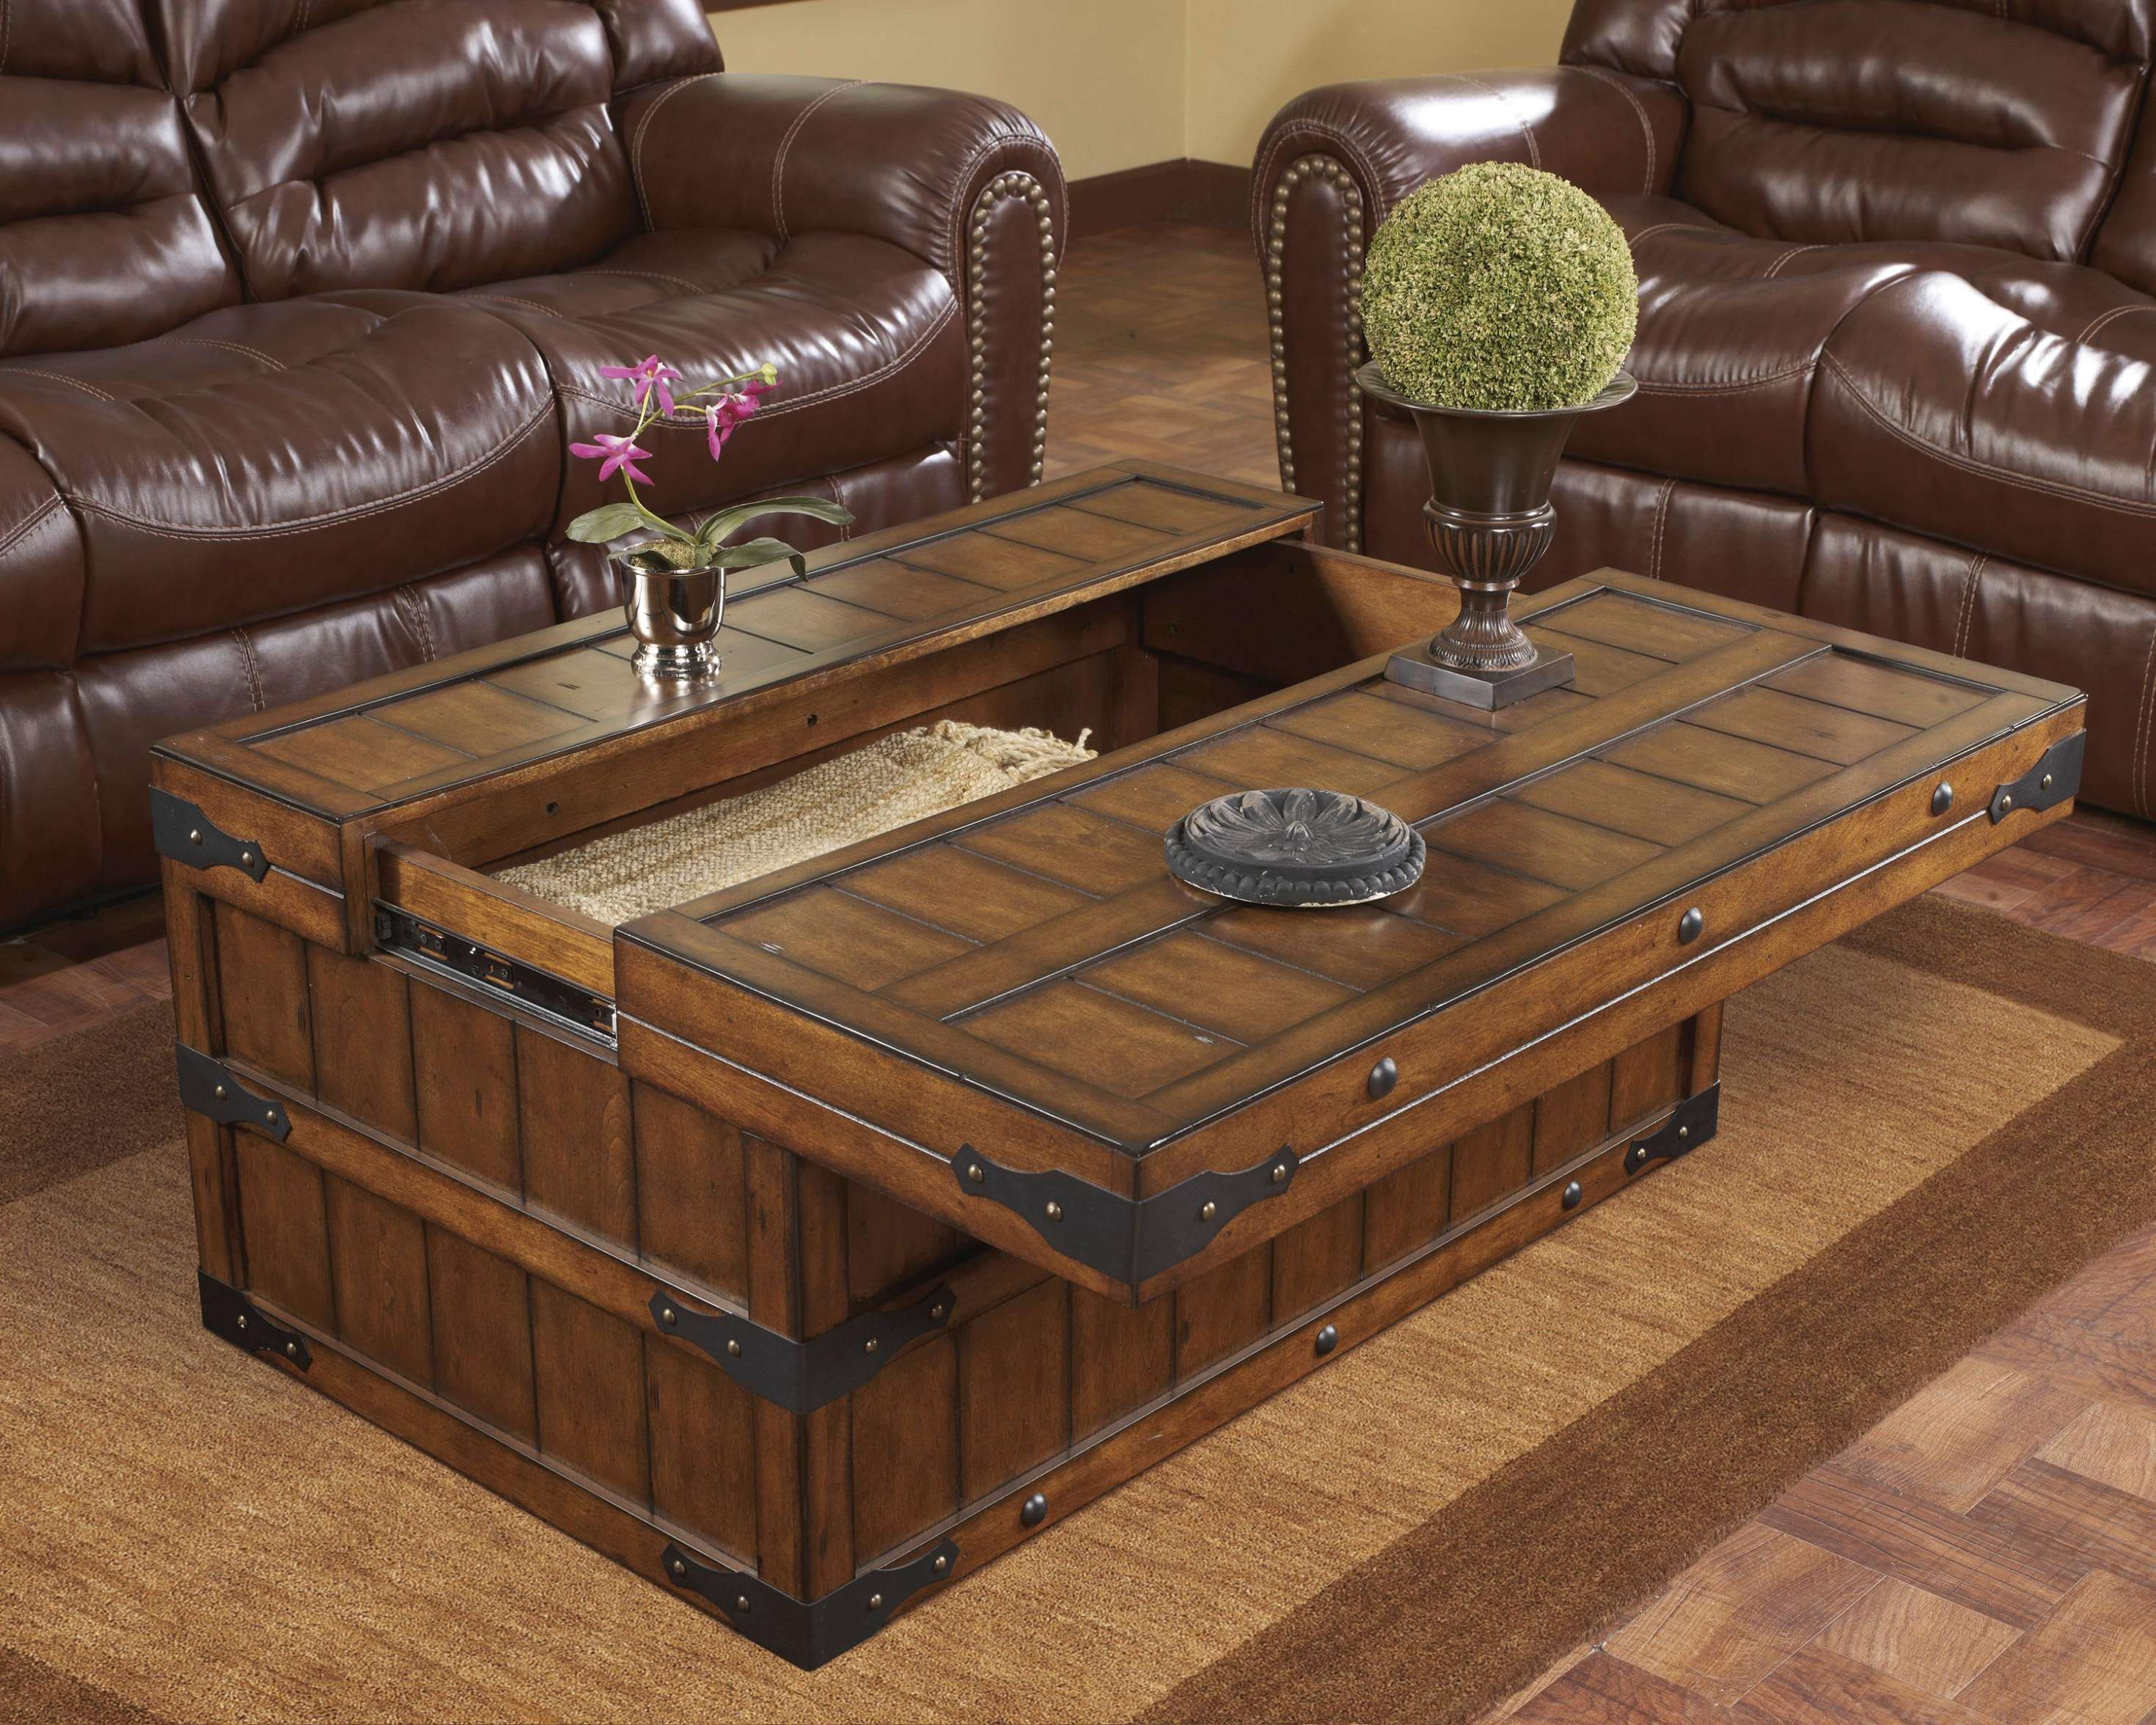 Coffee Tables : Rustic Storage Trunk Coffee Table Trunks And Regarding Well Known Trunks Coffee Tables (View 2 of 20)